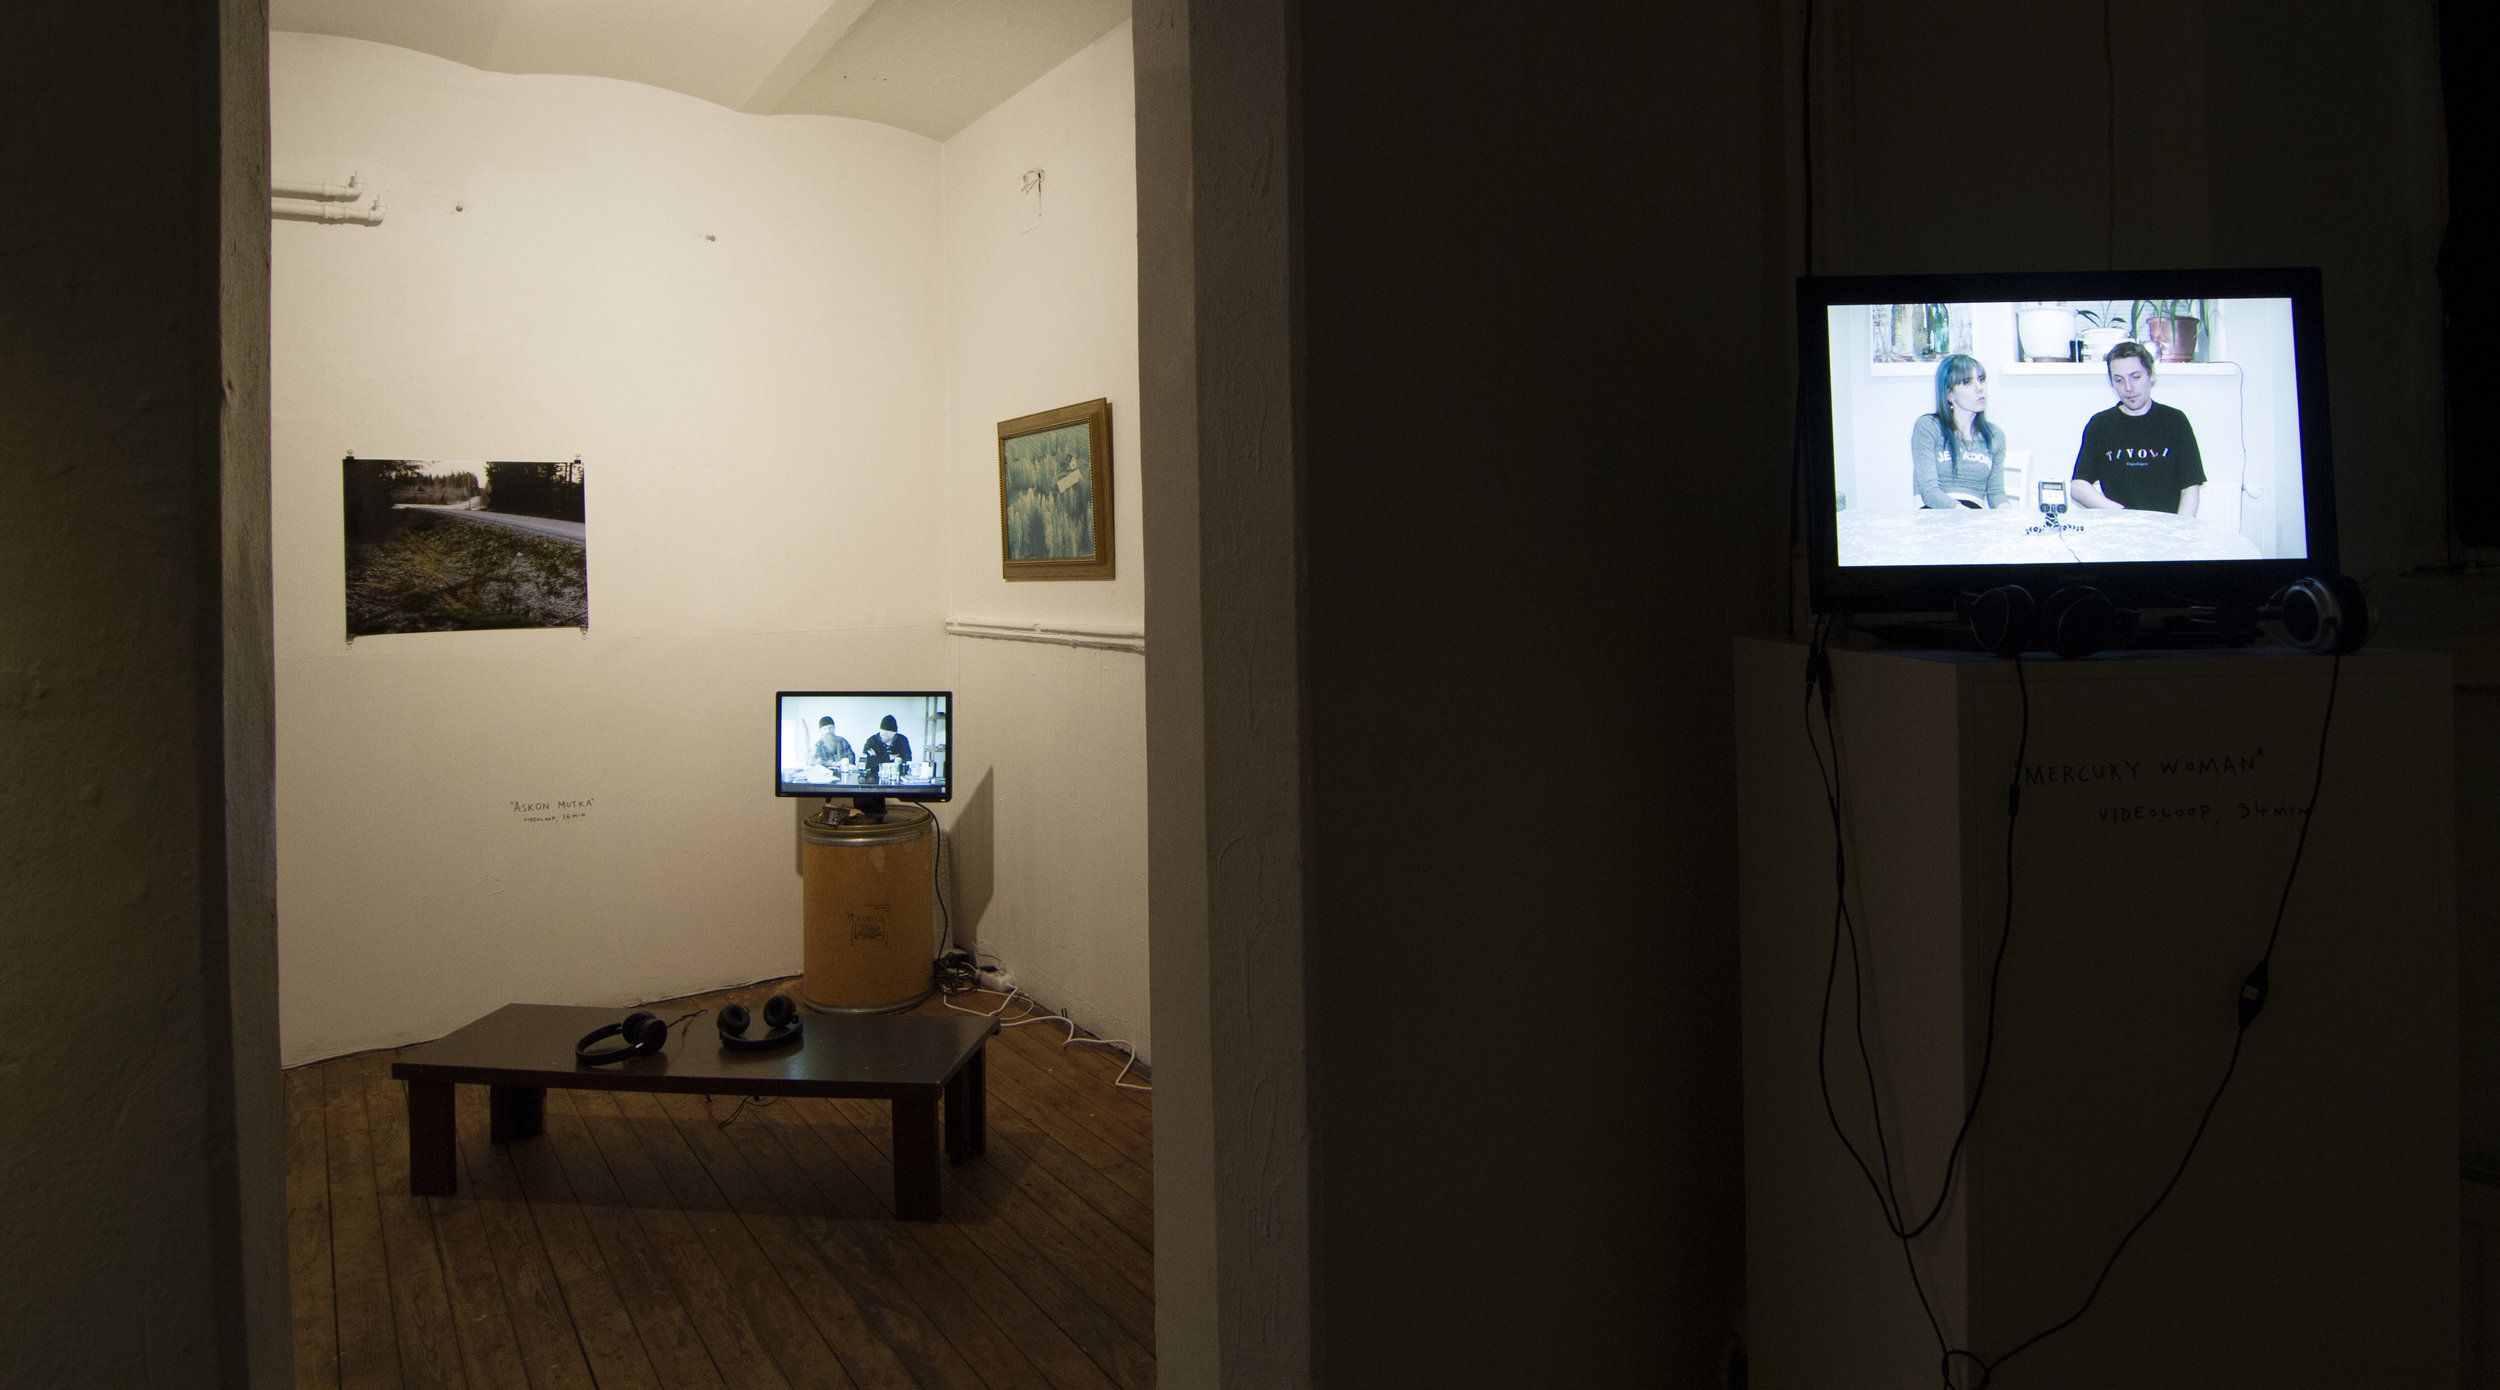 In the gallery there where 3 monitors of interviews with people from Ostrobothnia.